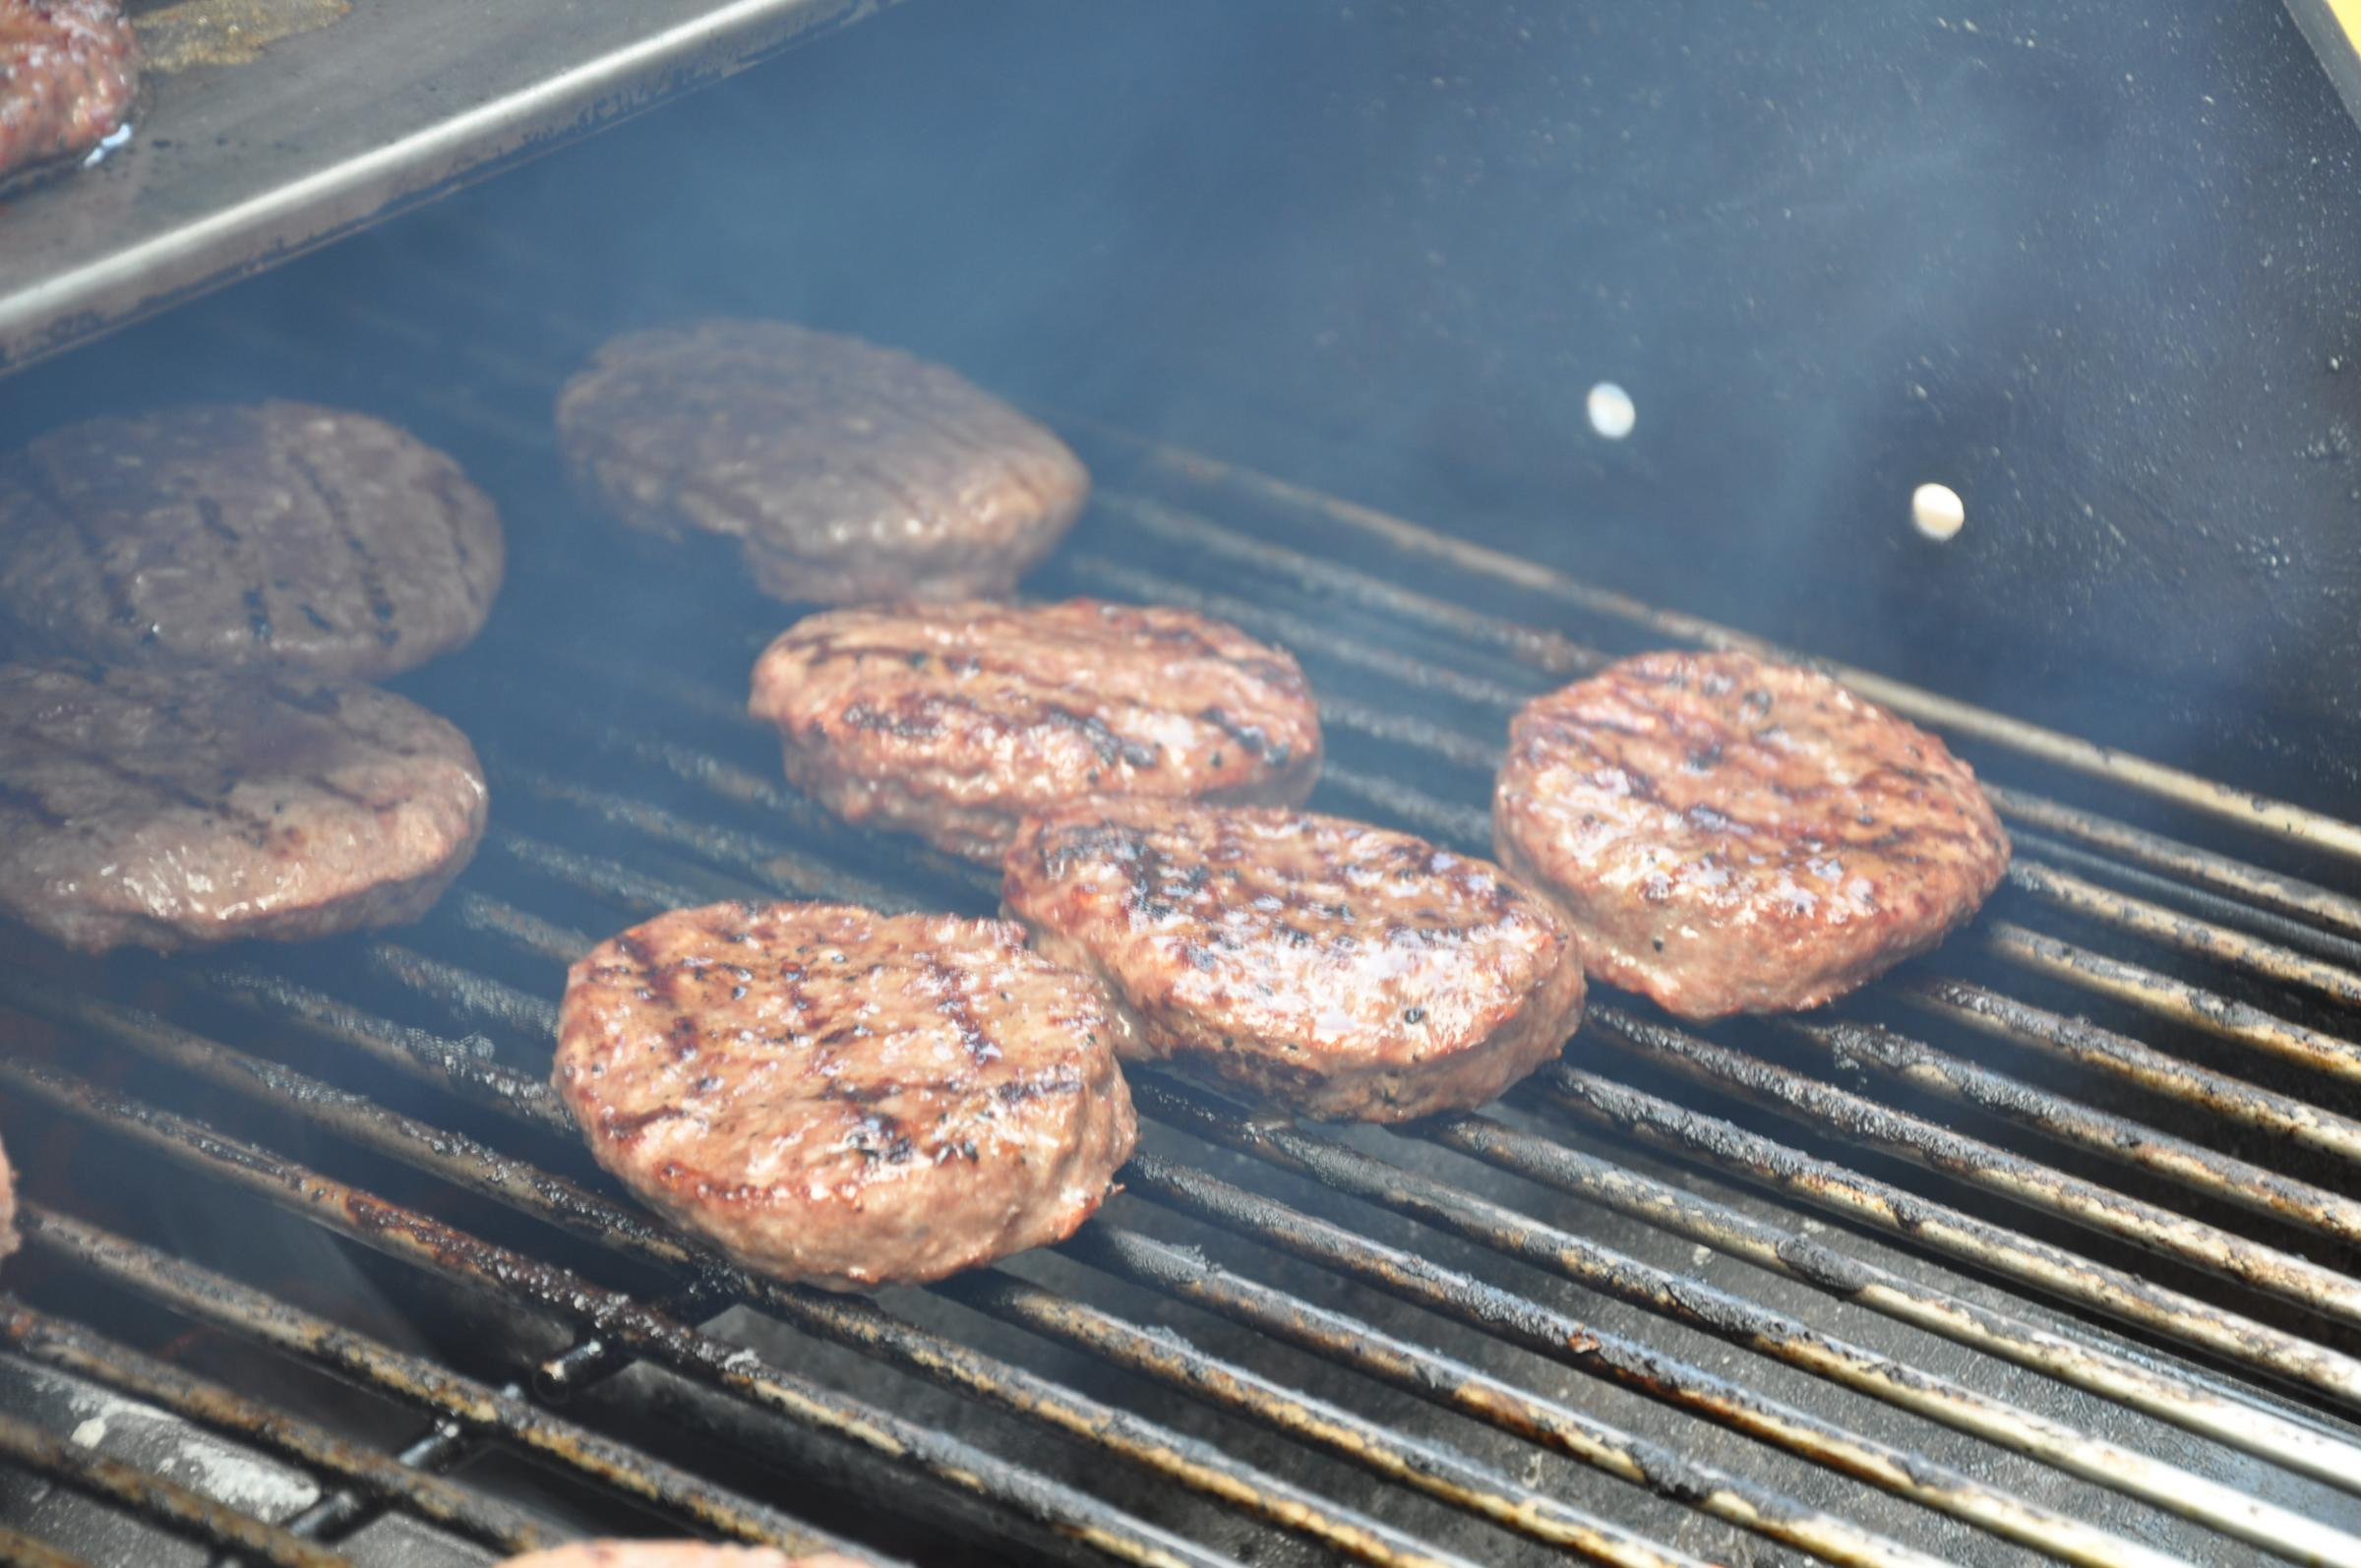 Cheshire Fire and Rescue urge people to be safe while having a barbeque